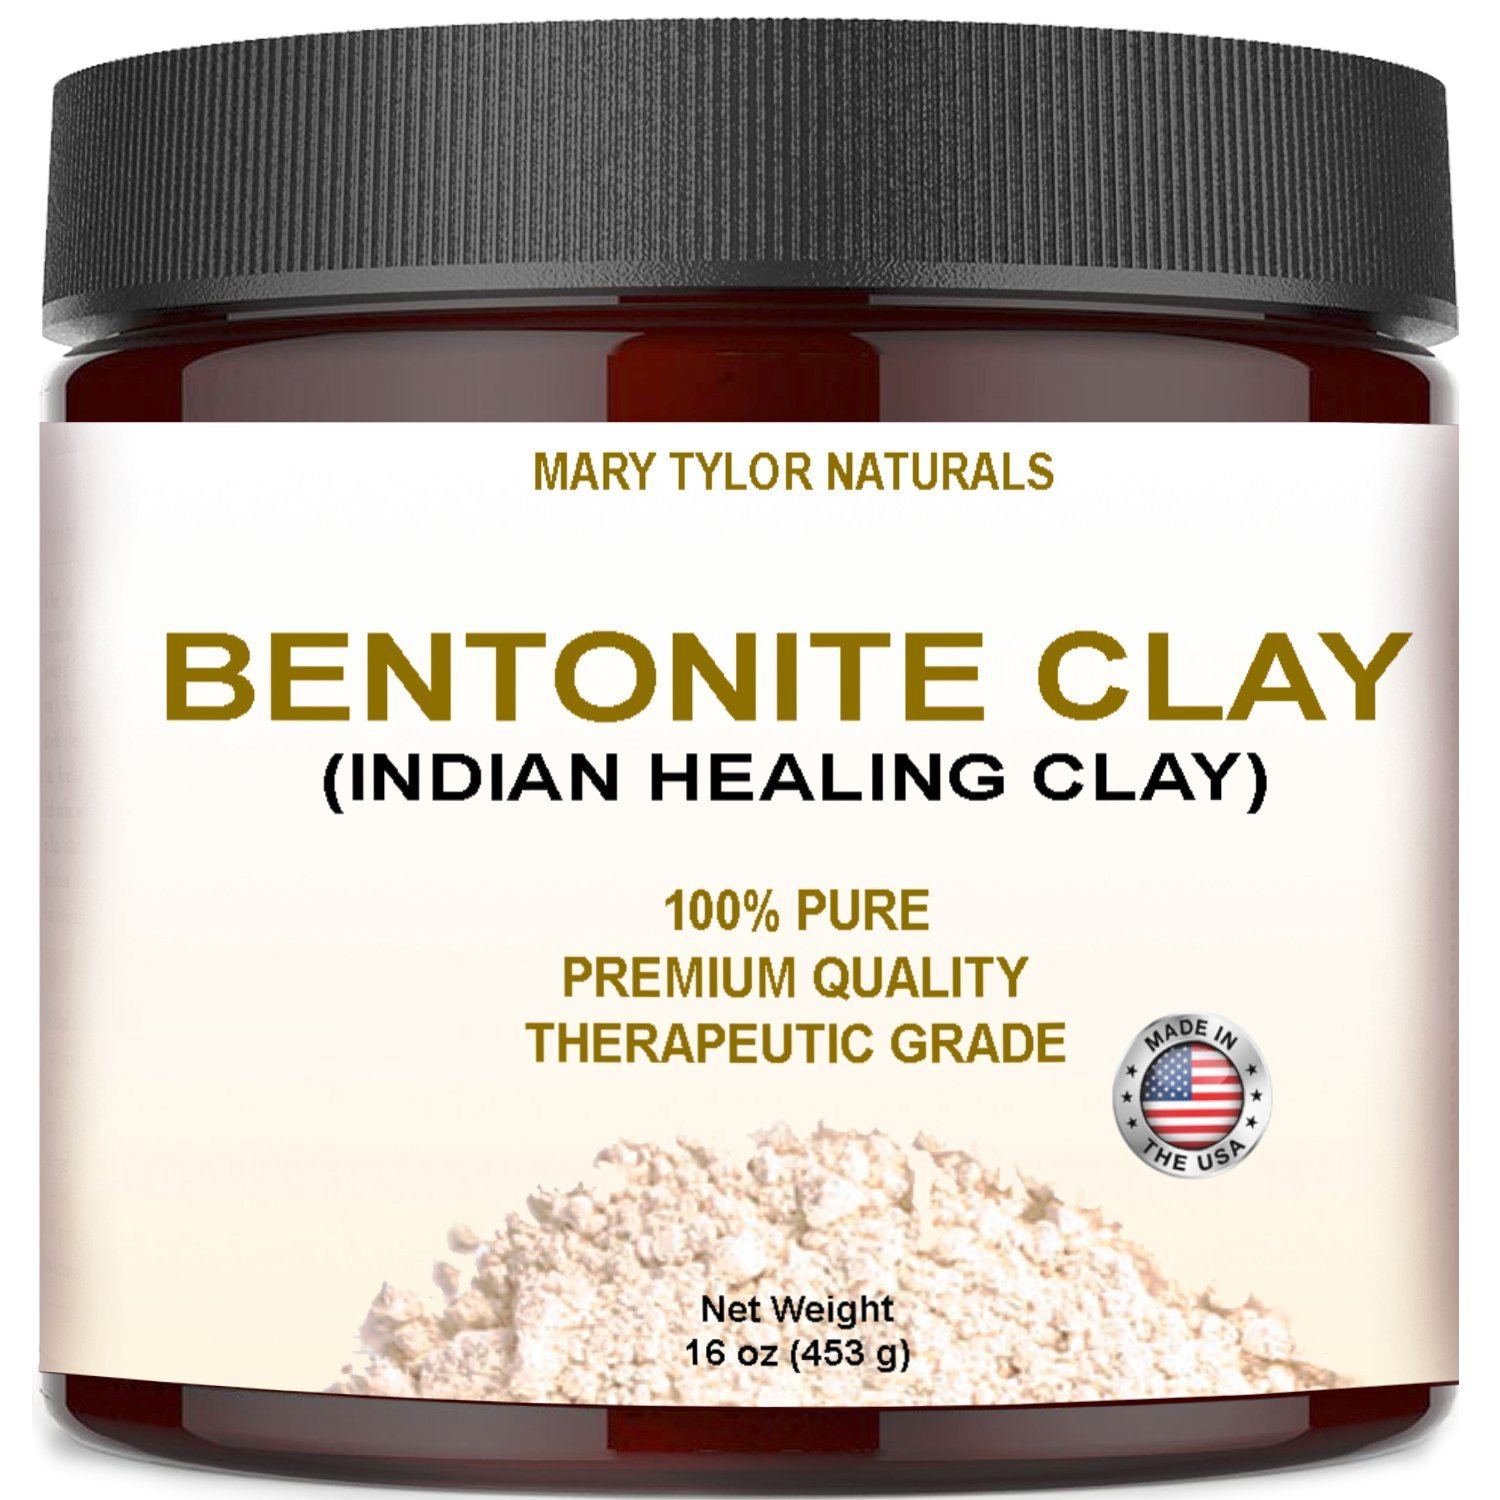 Bentonite Clay Large 16 oz Jar, Indian Healing Clay Powder By Mary Tylor Naturals tural Healing Facial Mask, Deep Pore Cleansing, Removes Excessive Facial Oil, Reduces Acne, Made in the USA